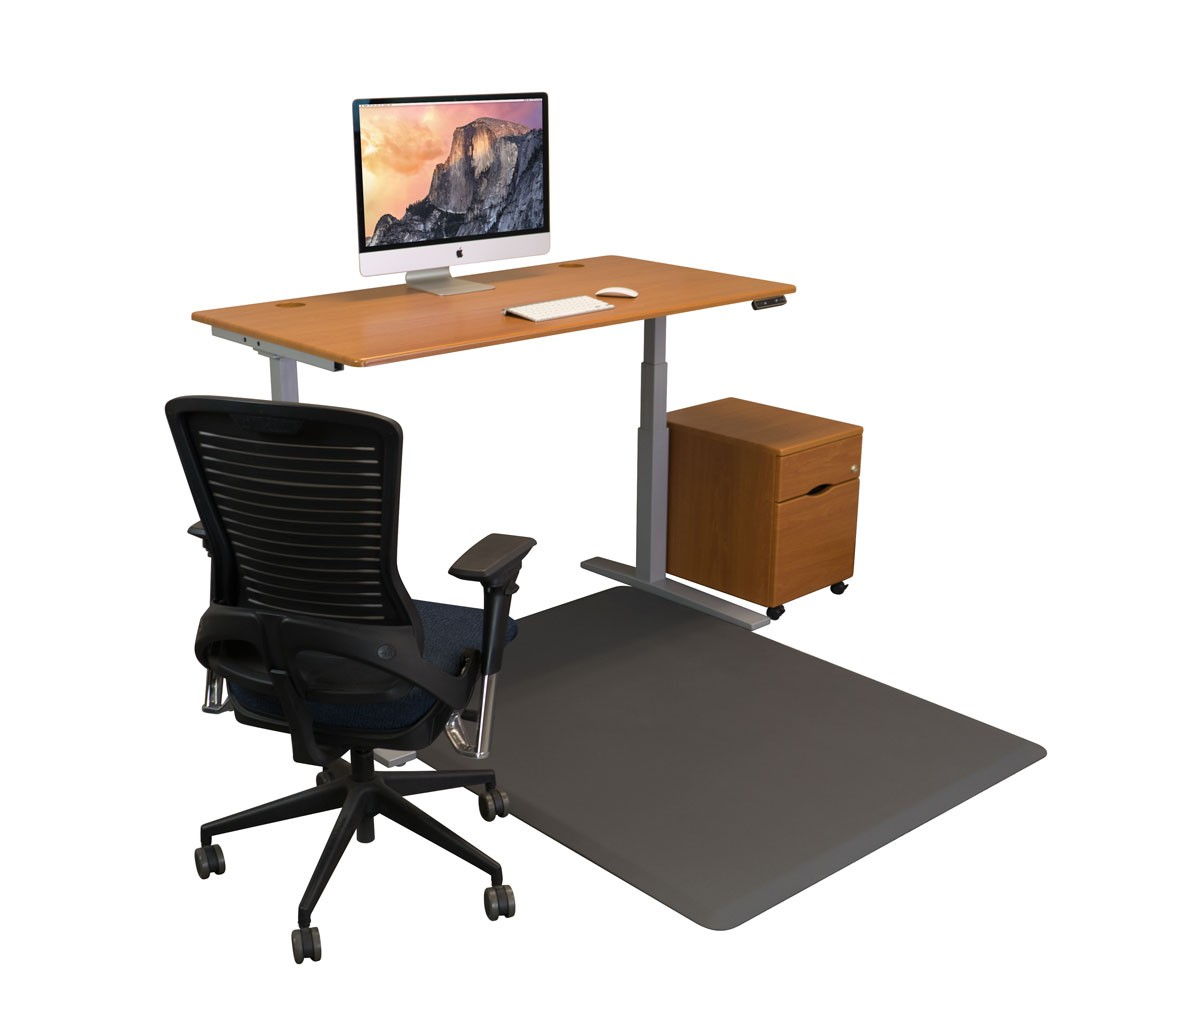 products varidesk floor anti groove activemat standing mat socks fatigue desk